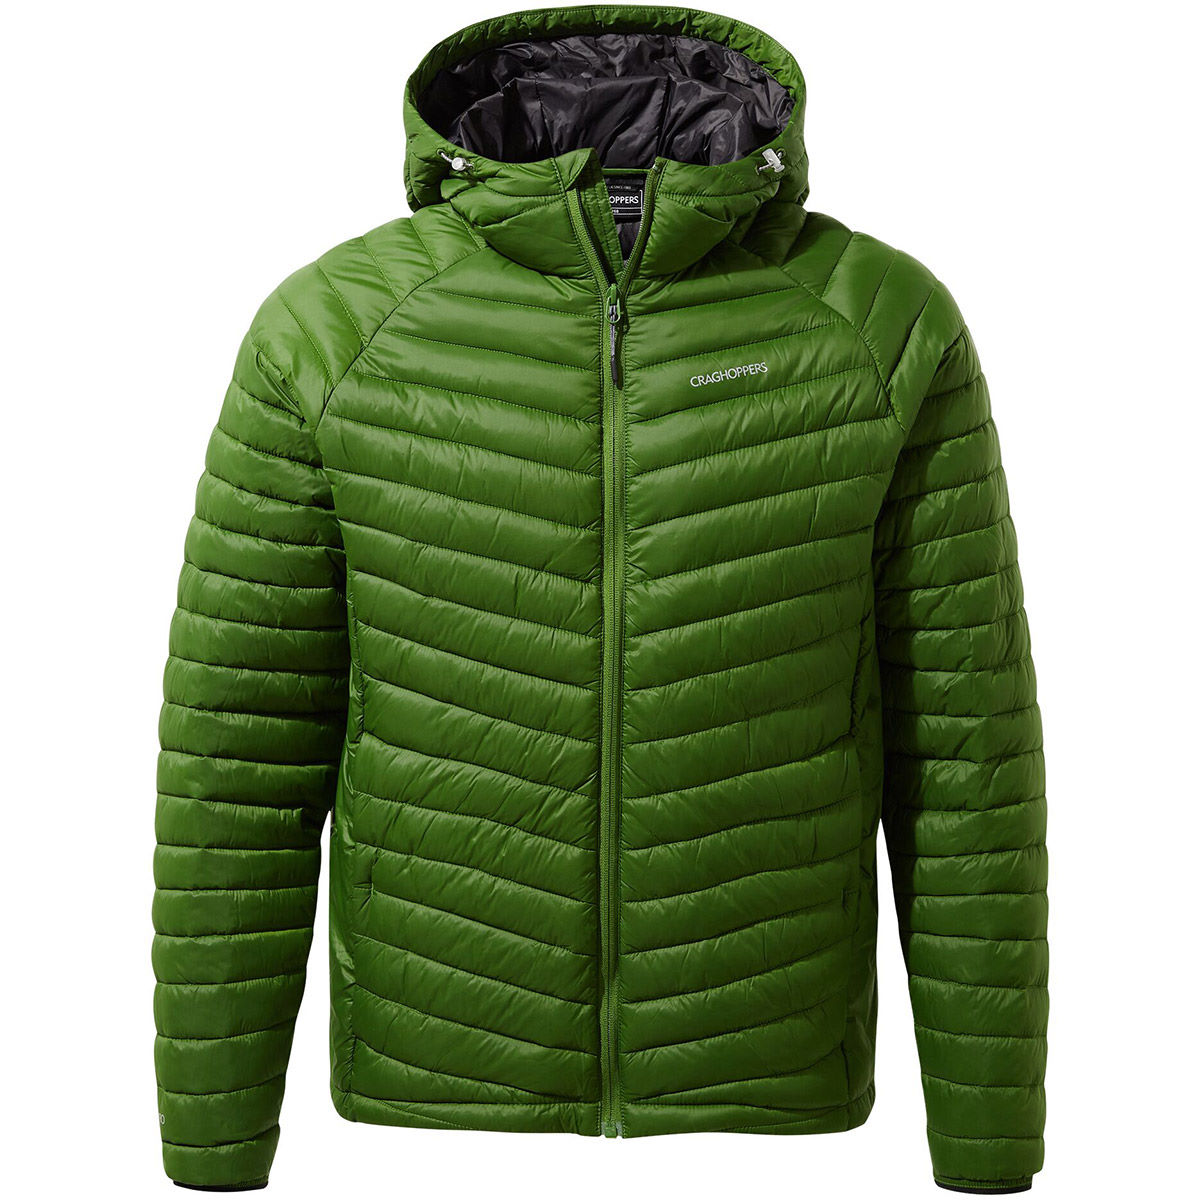 Craghoppers Expolite Hooded Jacket - Extra Large Dark Agave Green